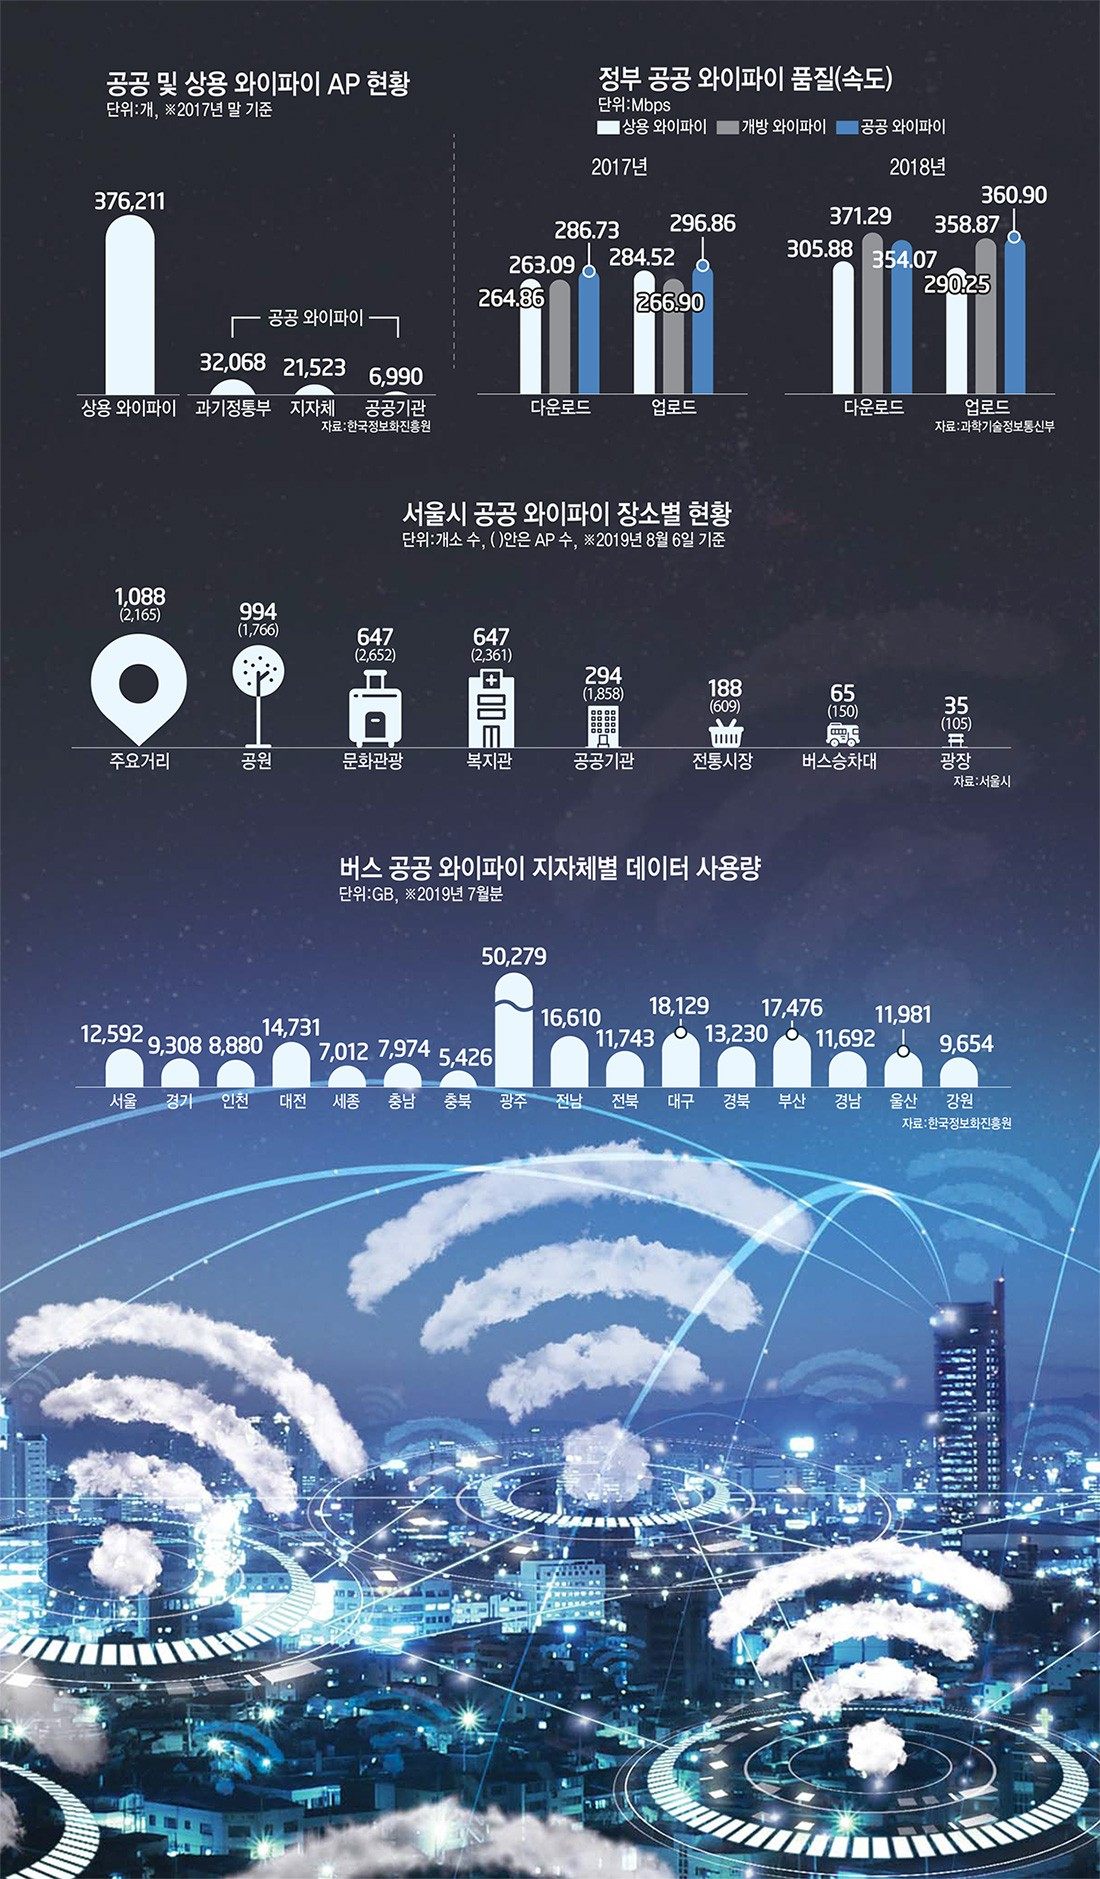 (Issue analysis) the public Wi-Fi paradigm should shift from construction to management